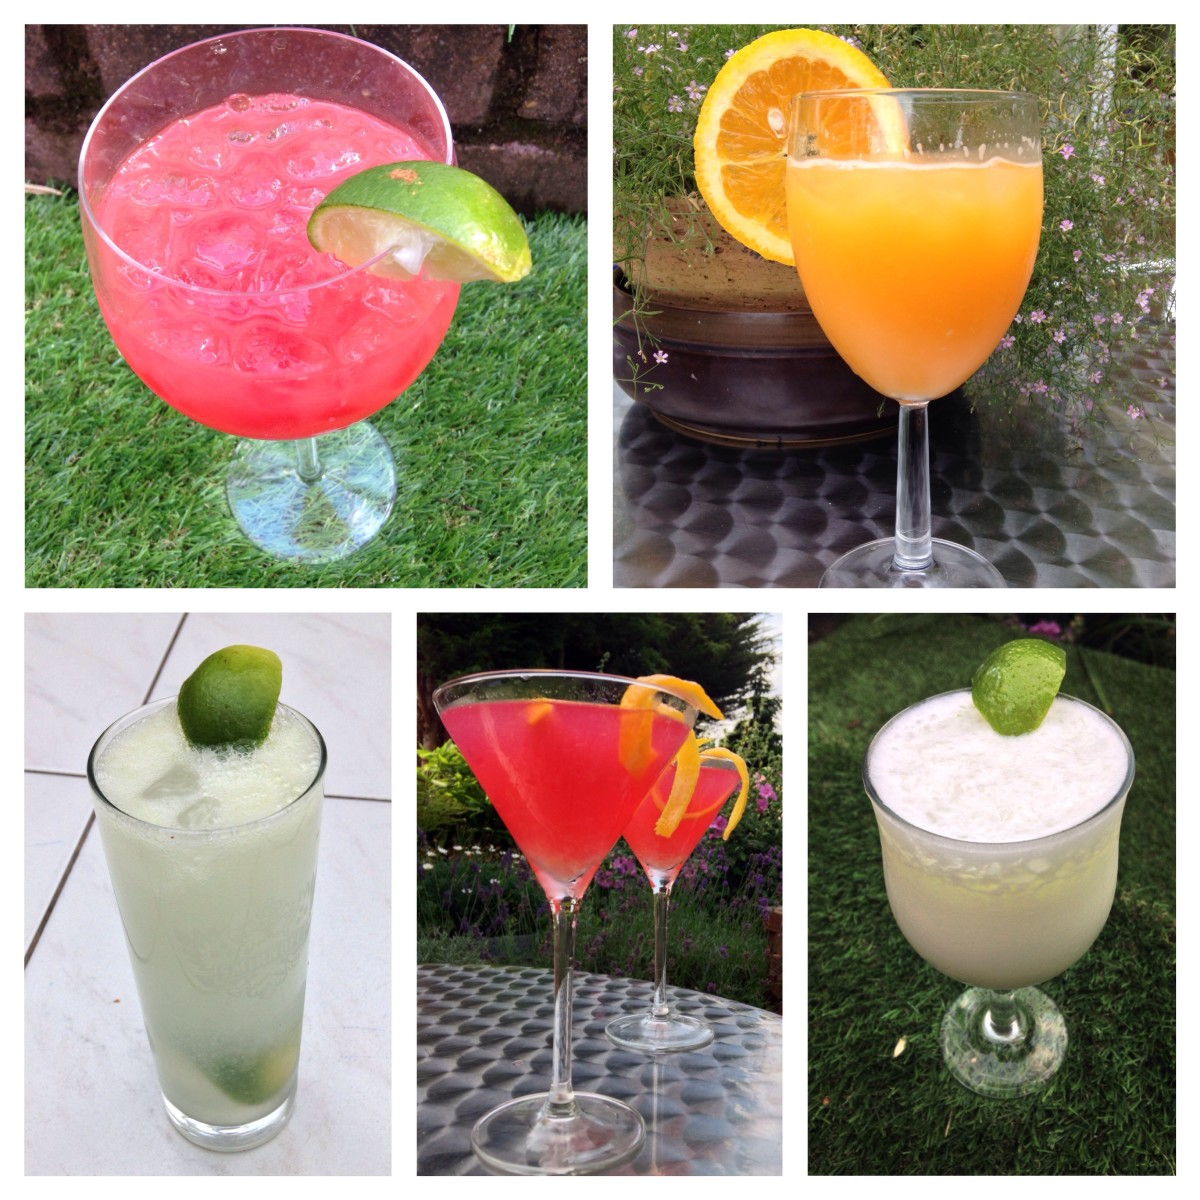 Vodka Drinks, Cocktails and Concoctions - 10 Refreshing Summer Recipes